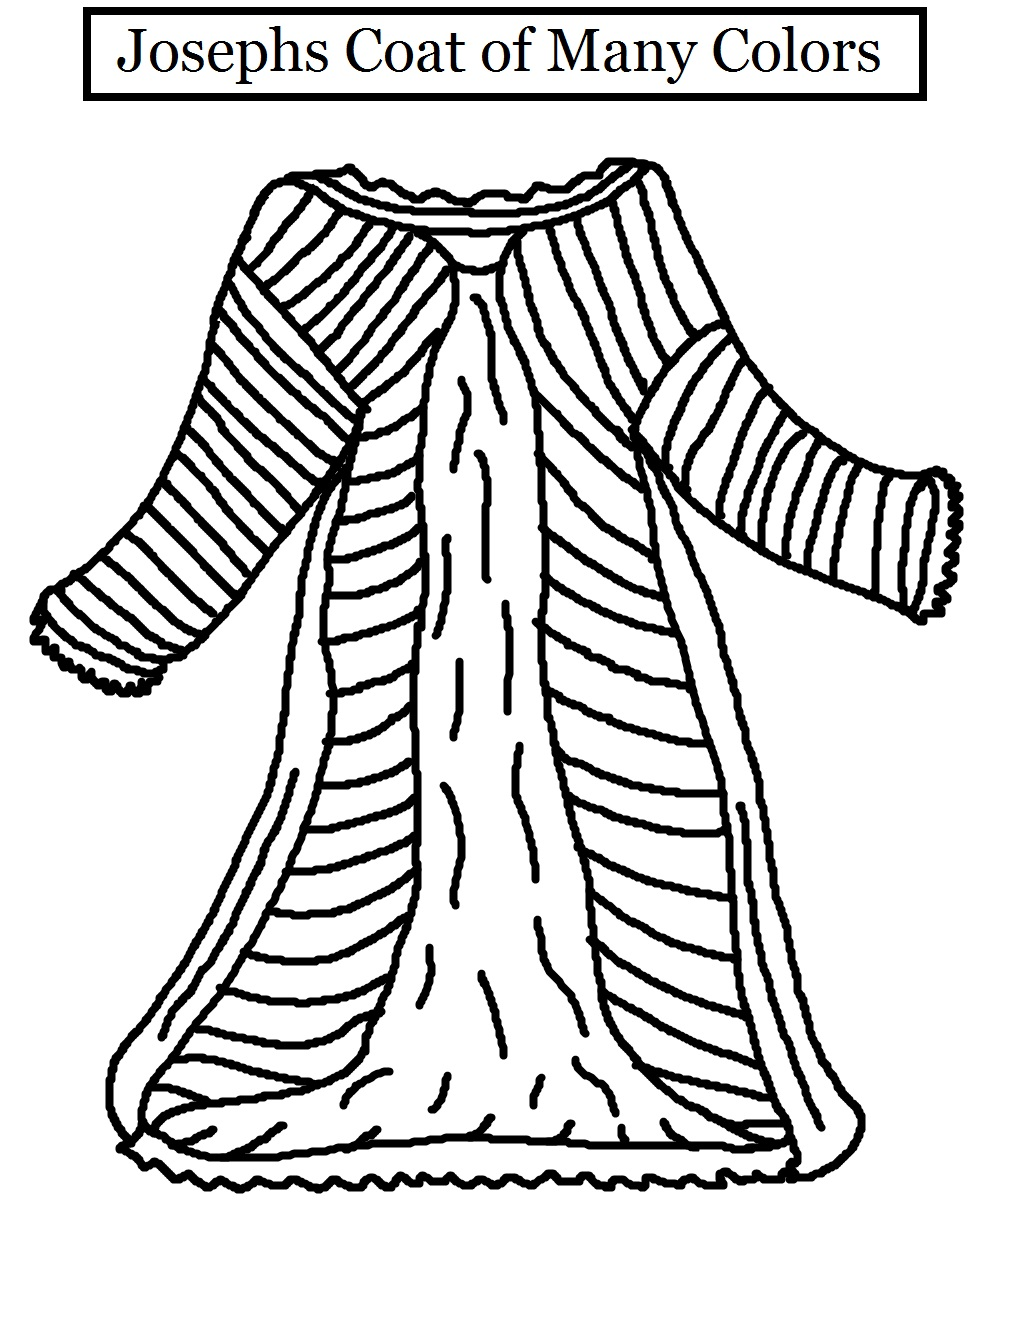 Episcopal Kids November 2011 Coloring Page Coat Of Many Colors